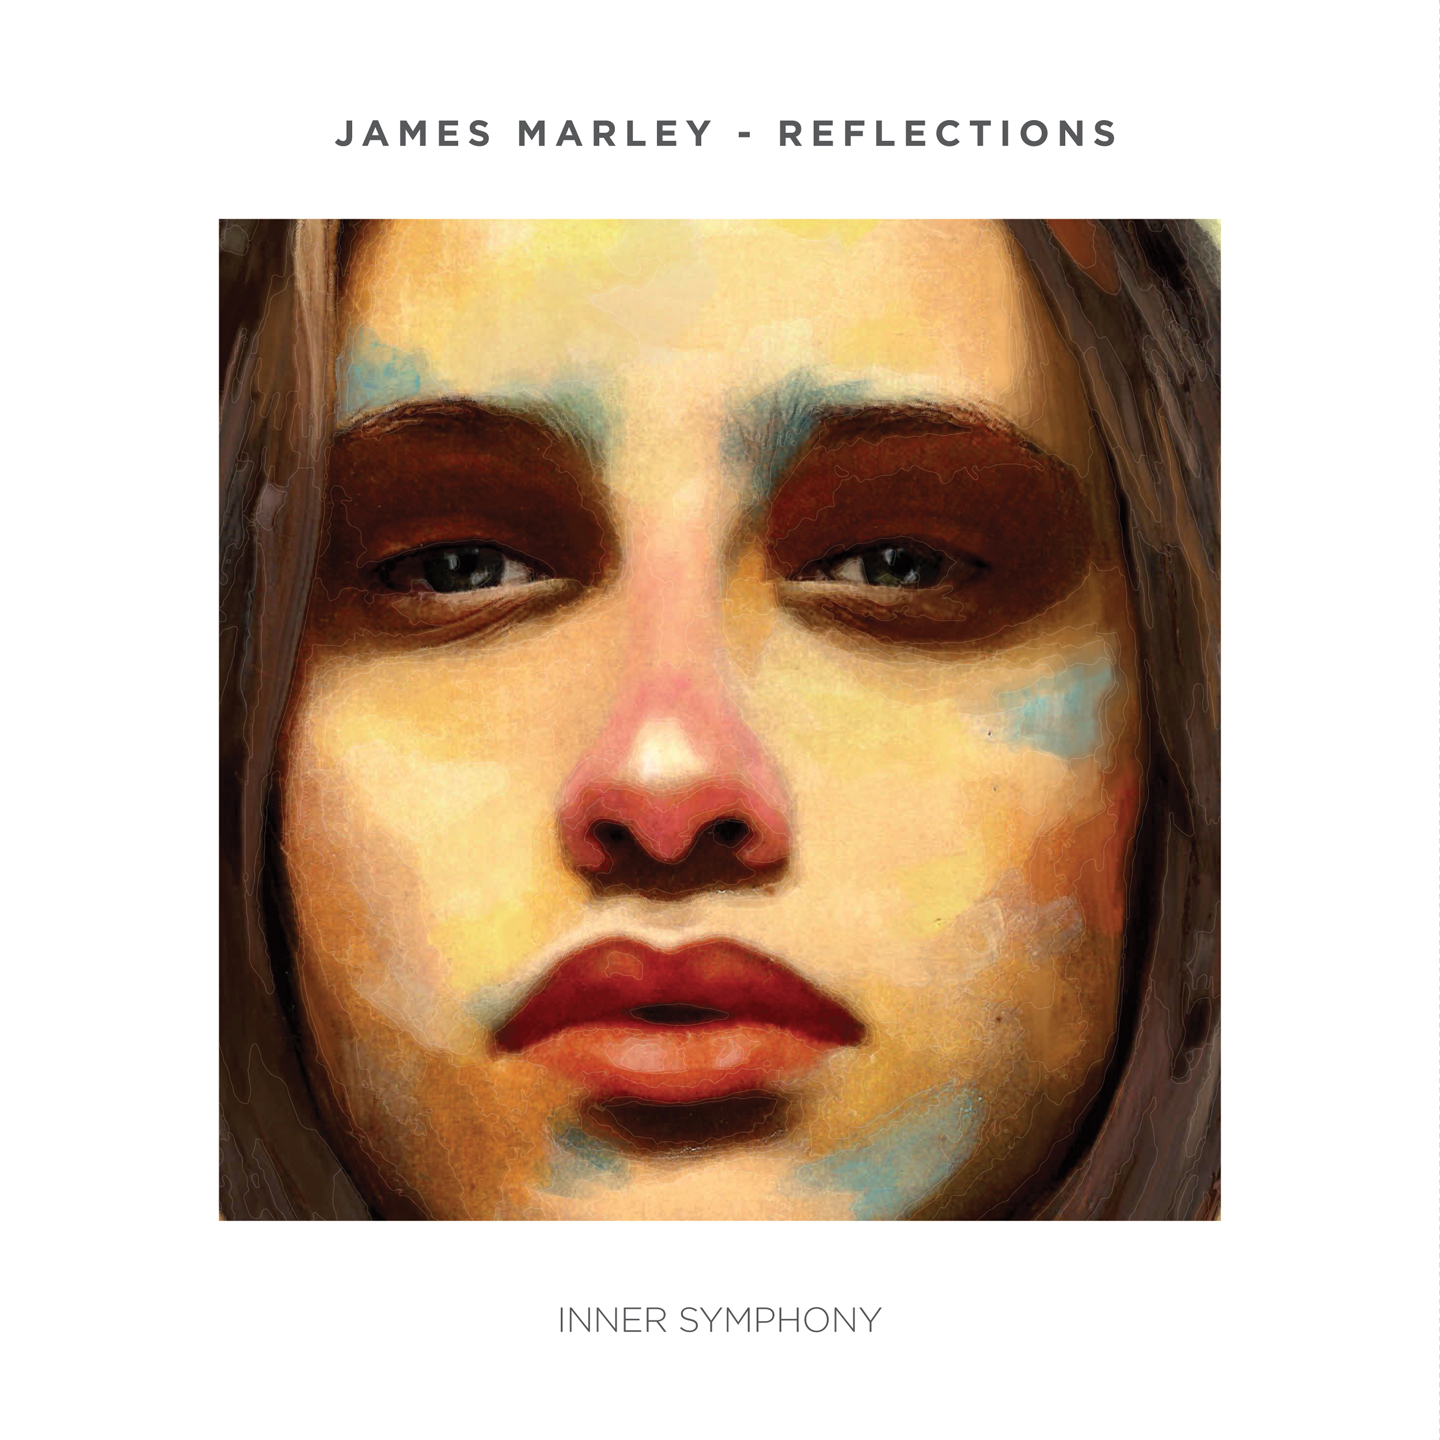 IS012 James Marley Reflections - Inner Symphony